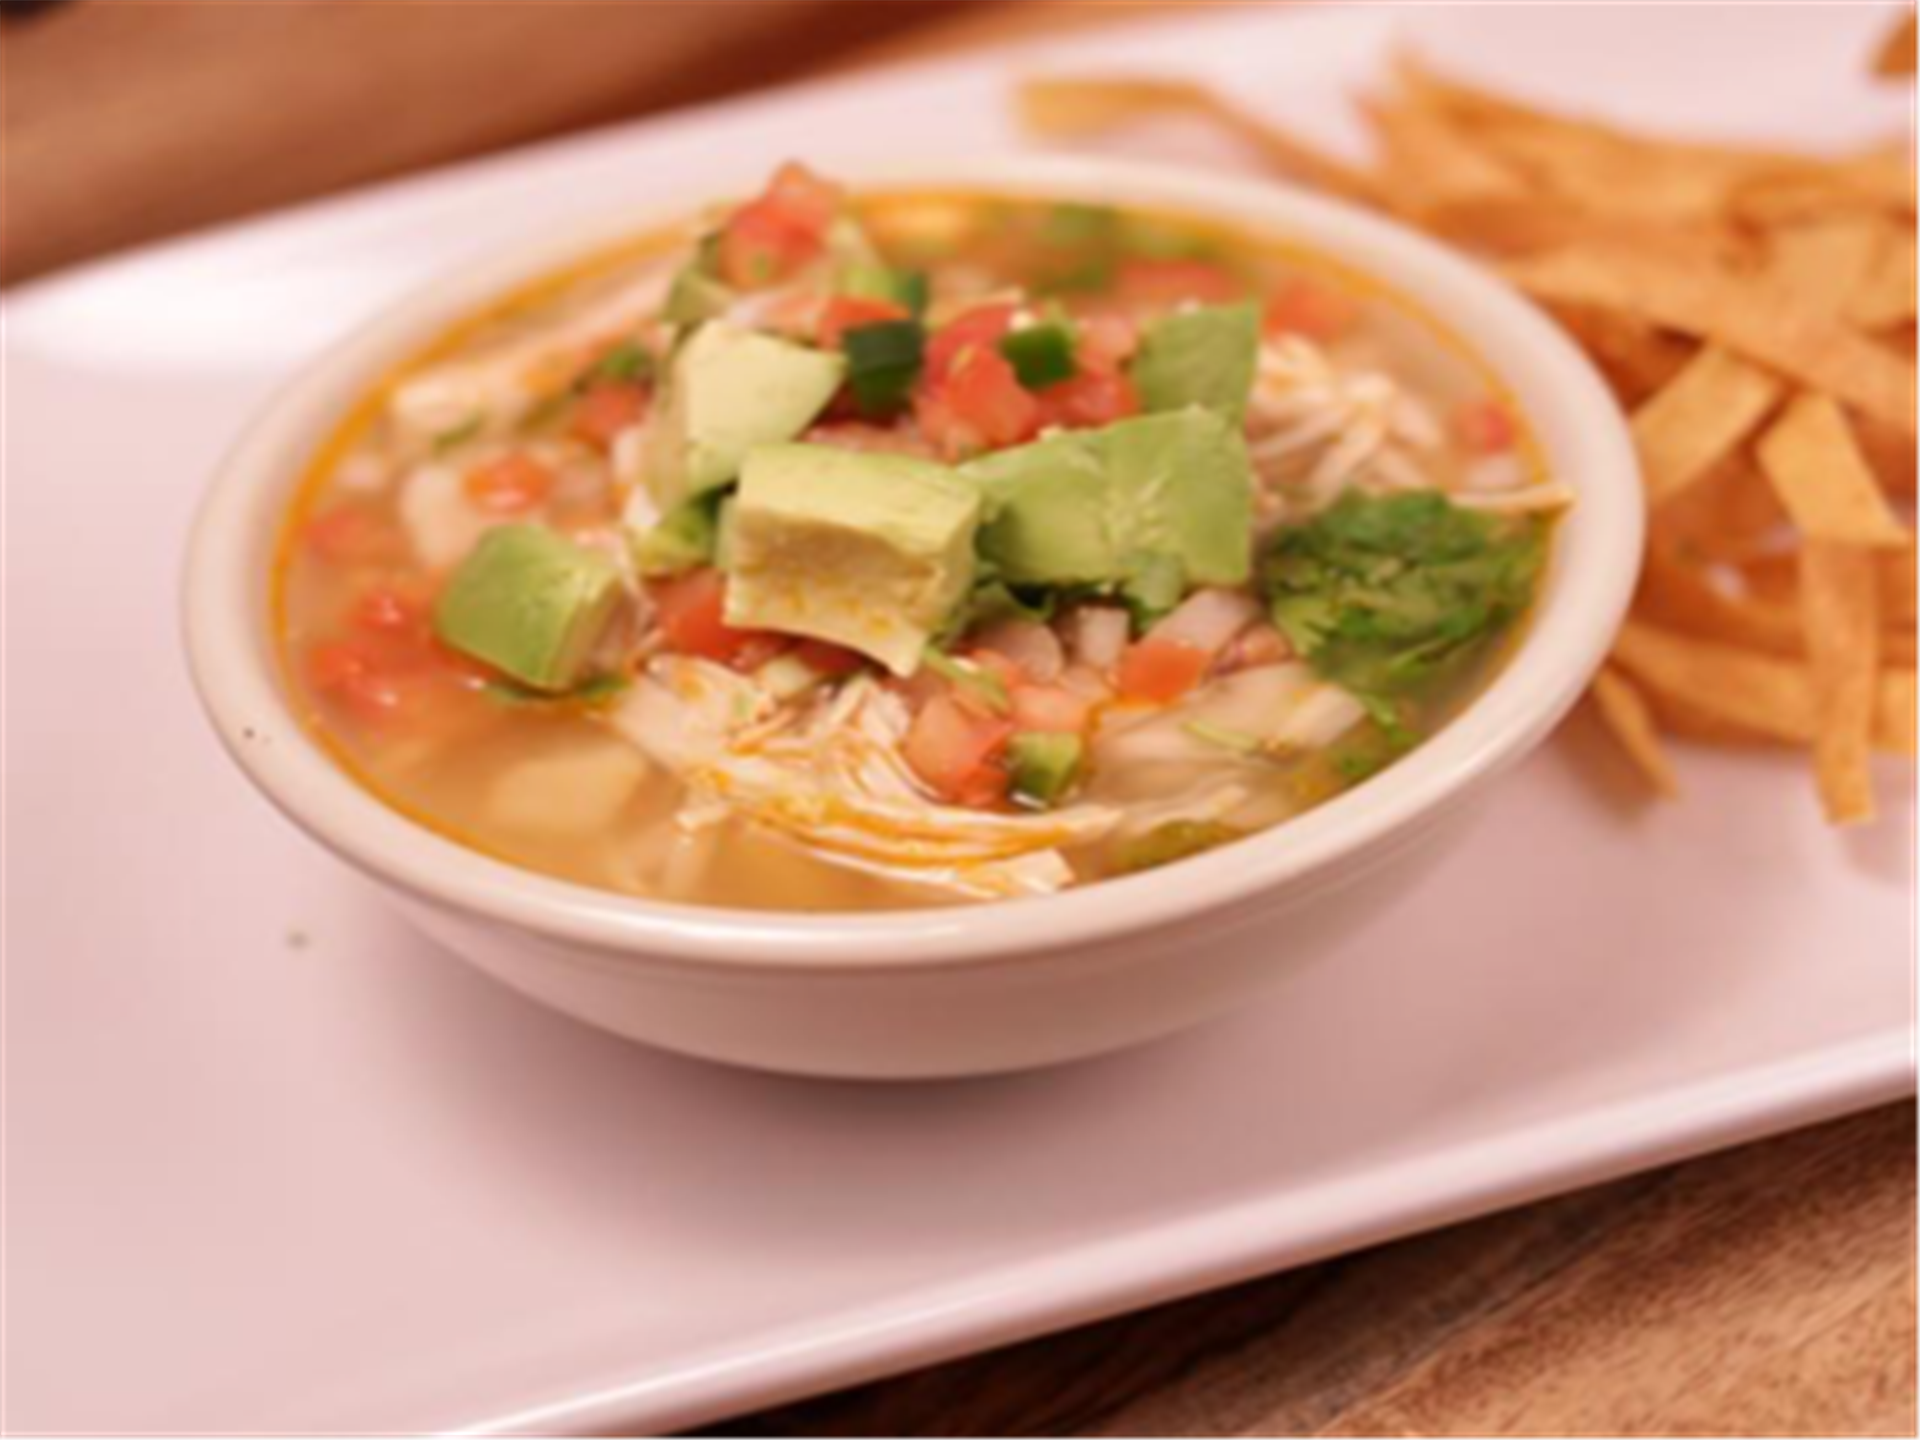 Chicken Soup. A hearty chicken broth layered with flavor. Shredded chicken breast, rice, vegetables, pico de gallo, and avocado. Topped with tortilla strips